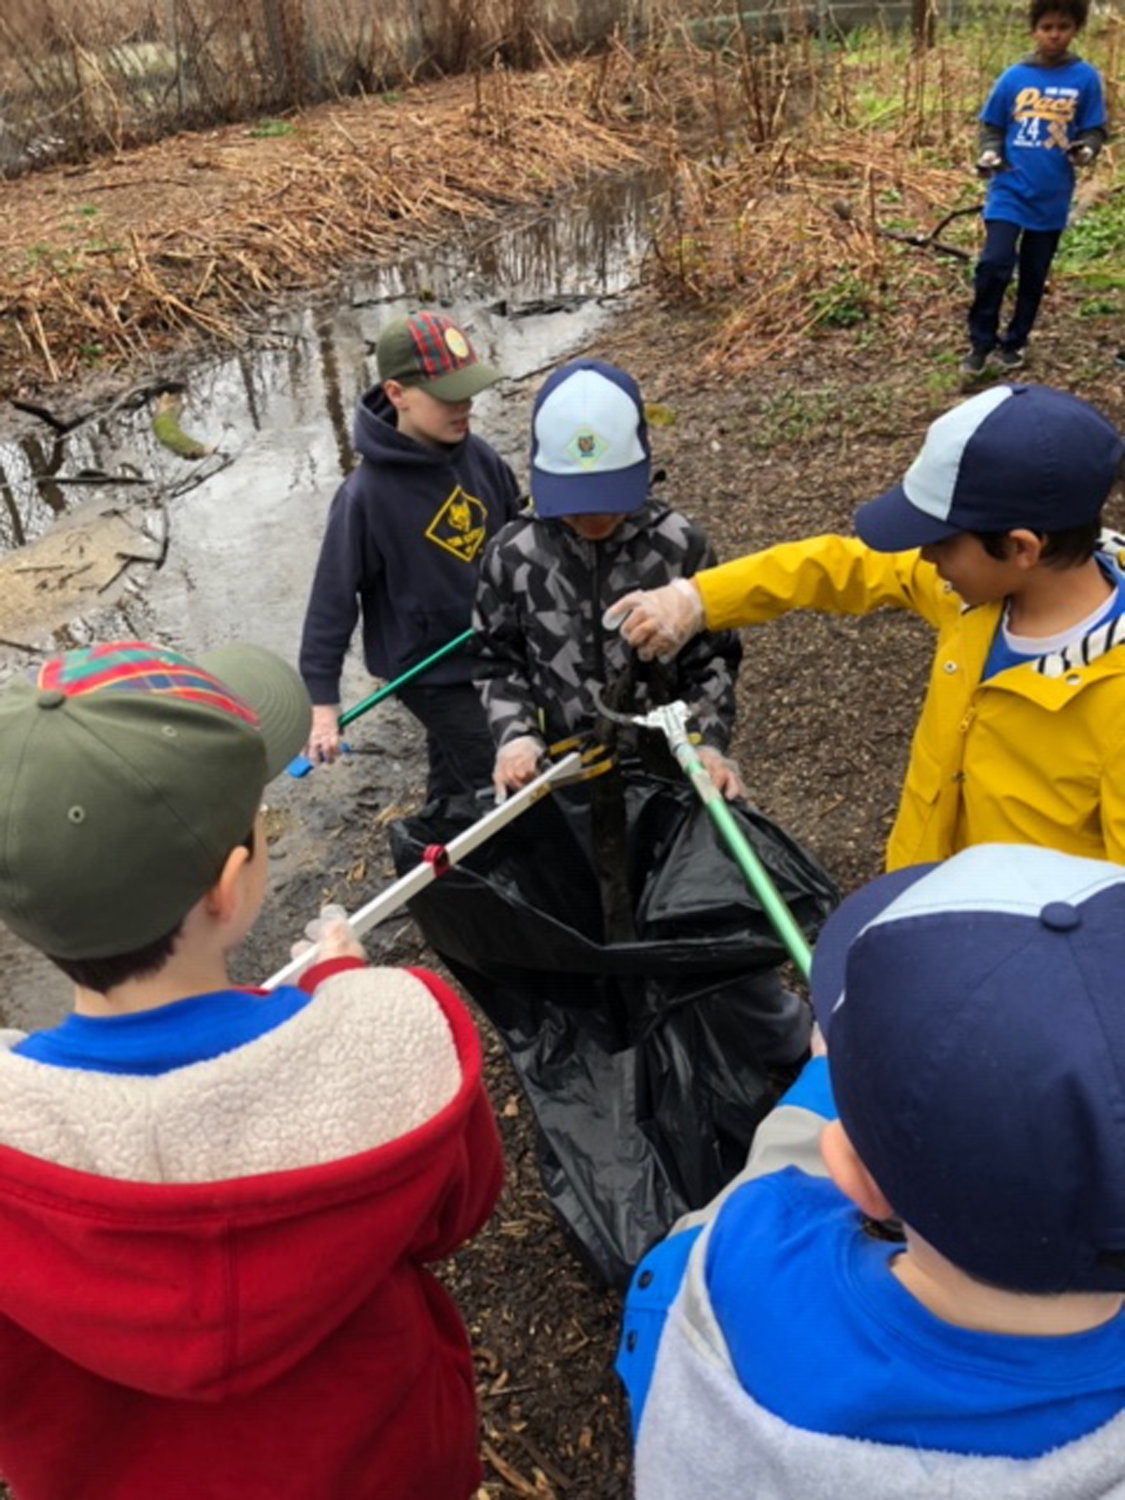 The cub scouts worked together to collect trash.